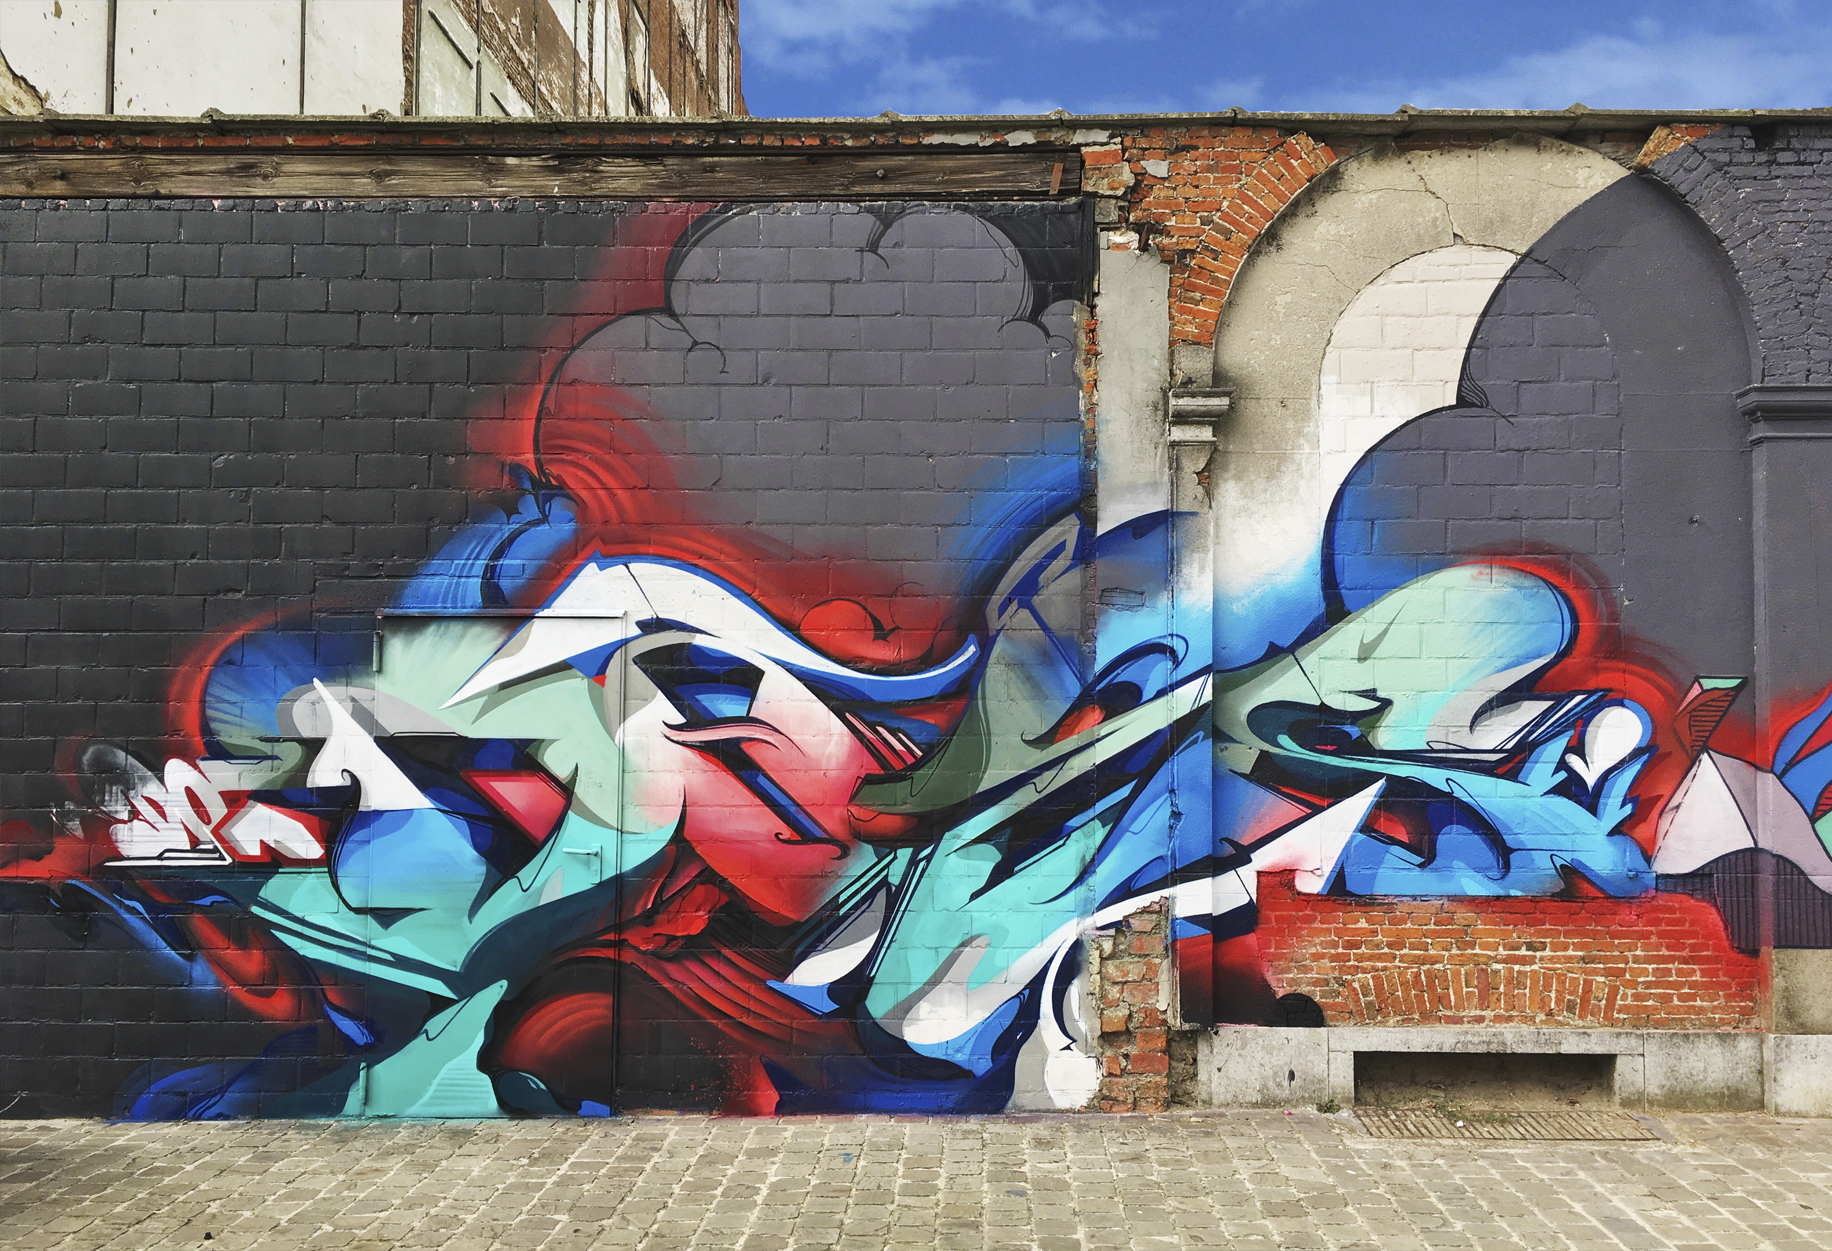 A work by Does - Antwerp, Belgium 2018